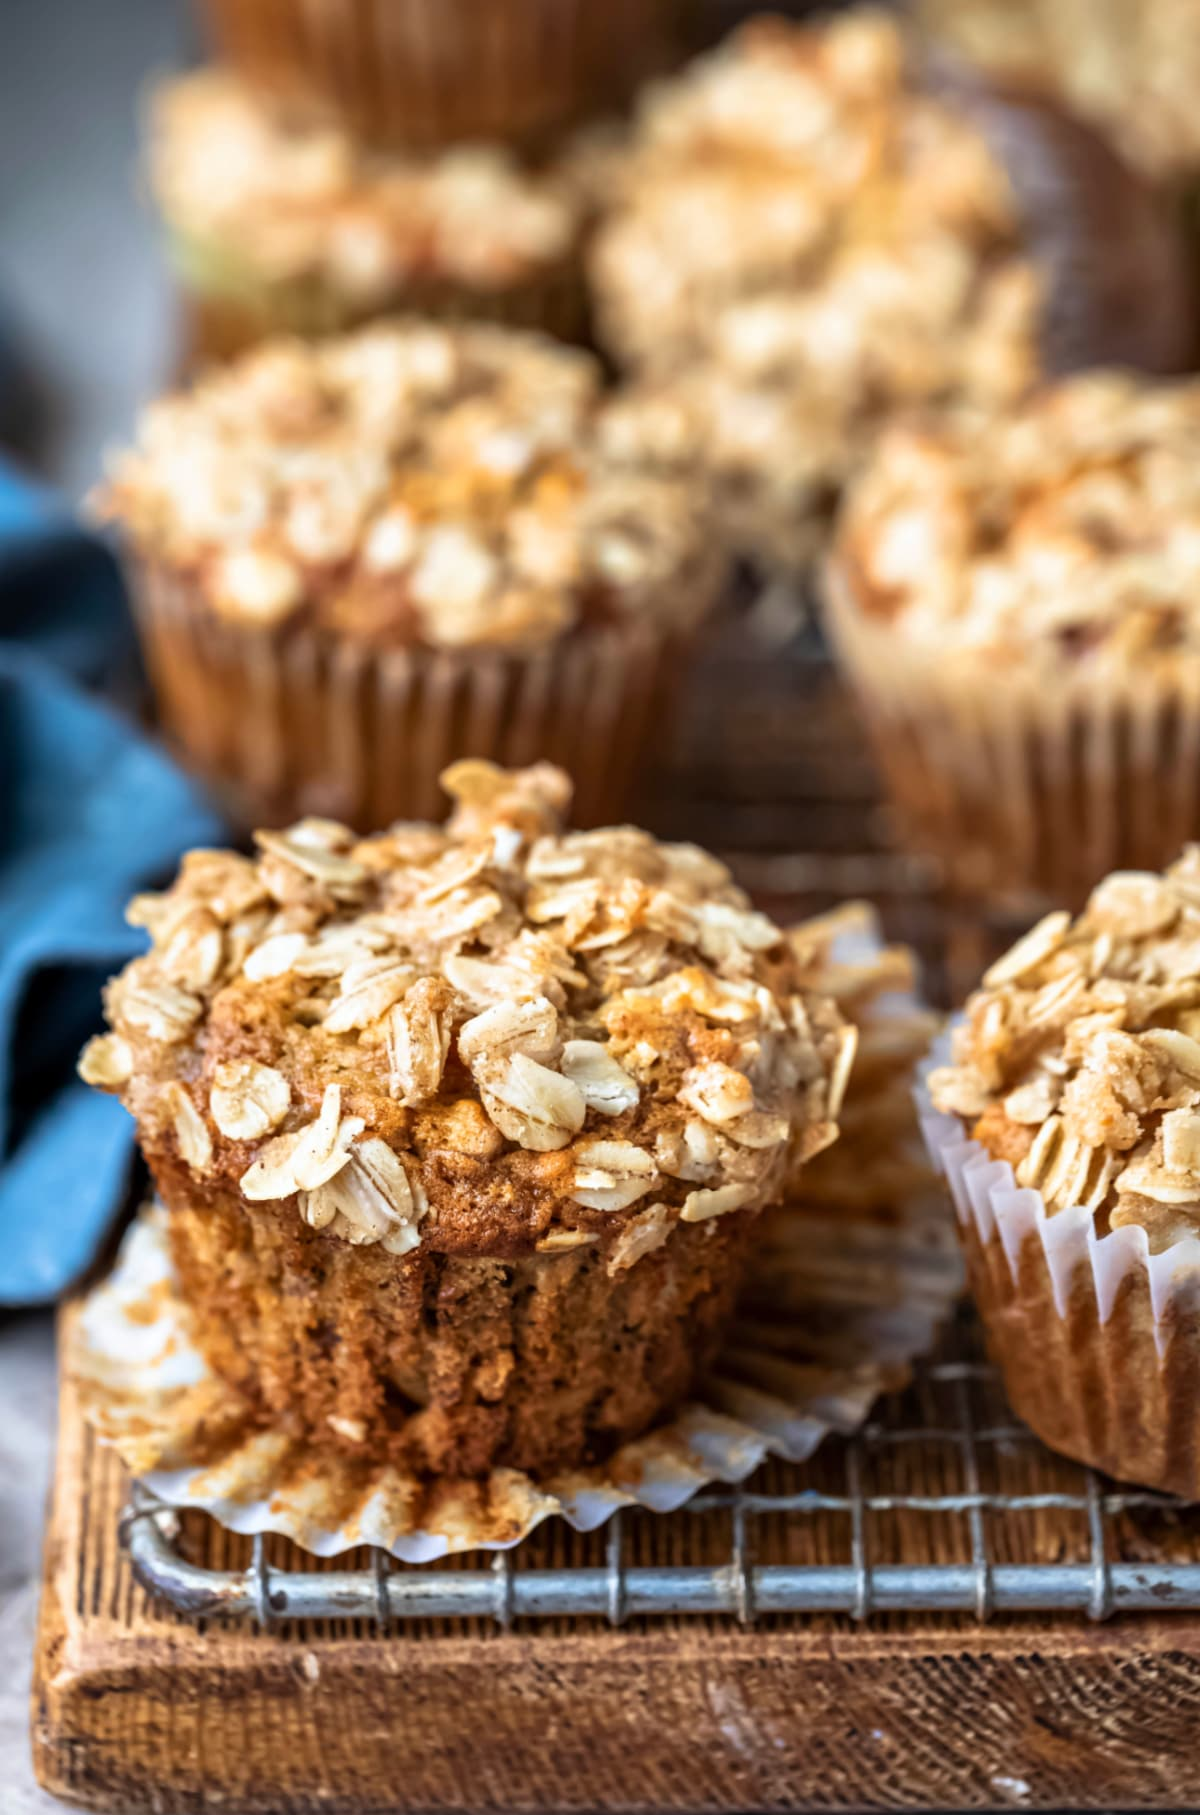 Unwrapped banana oatmeal muffin next to a blue linen napkin